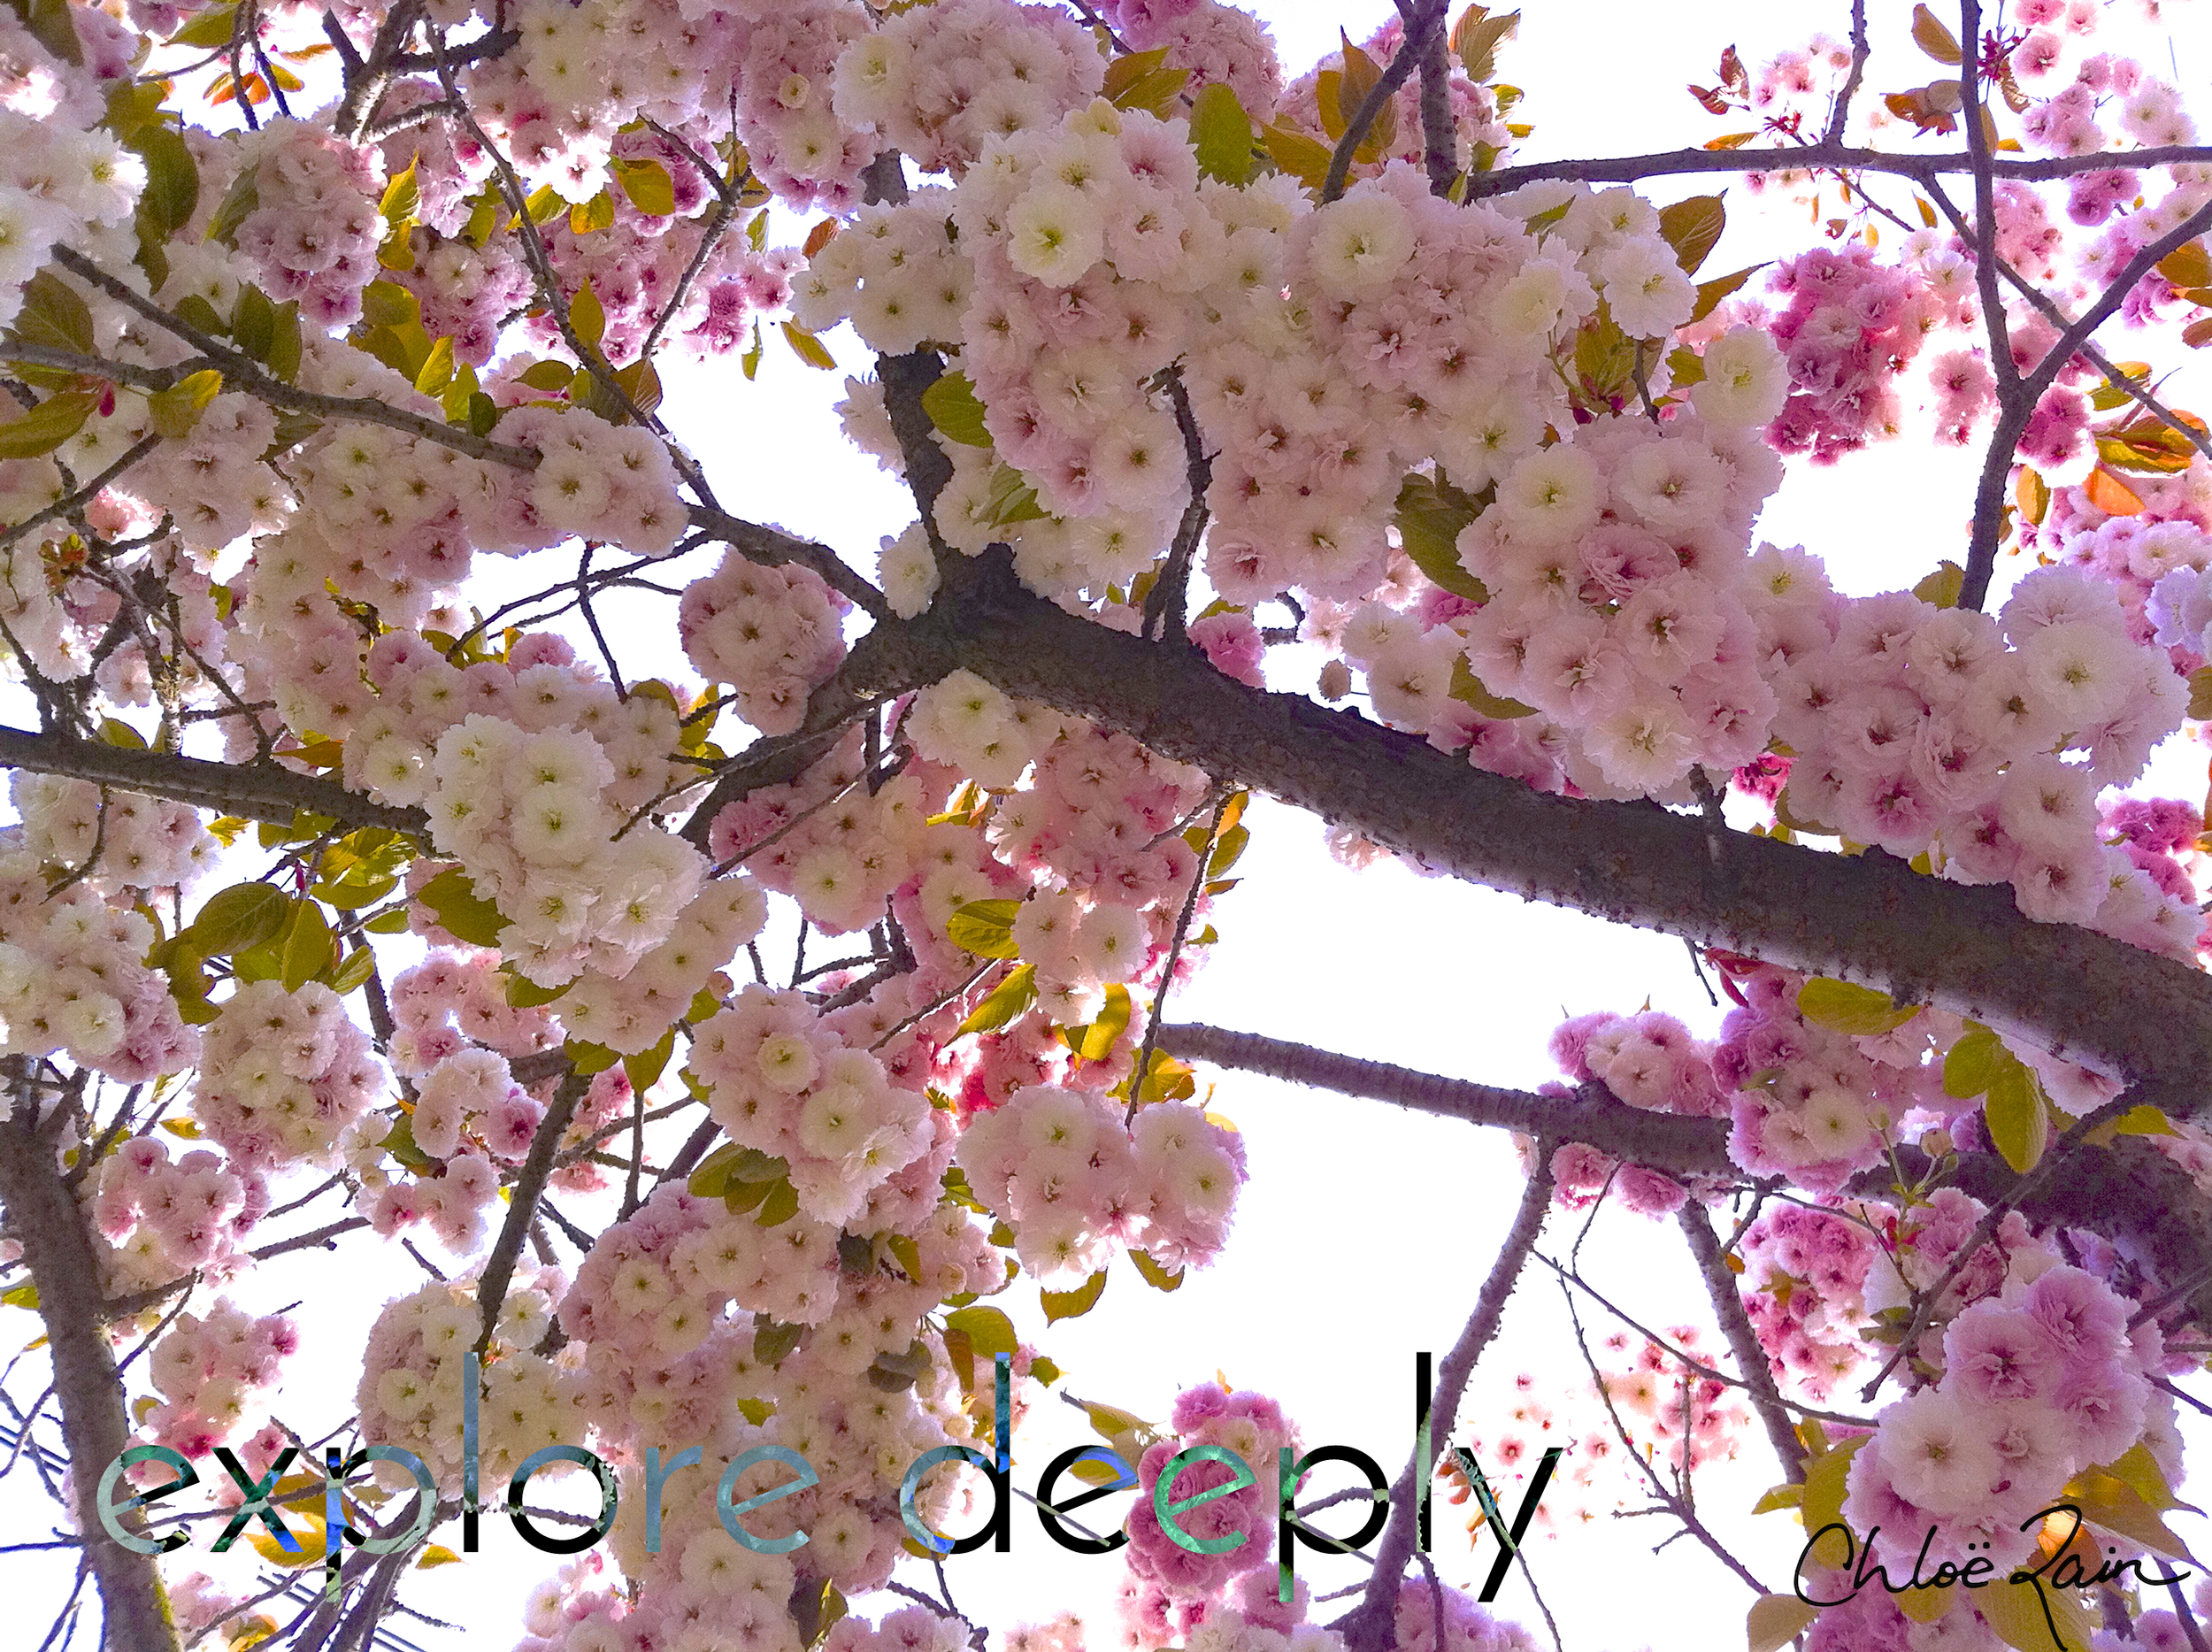 explore deeply spring cherry blossoms inspirational quotes grace giving tuesday